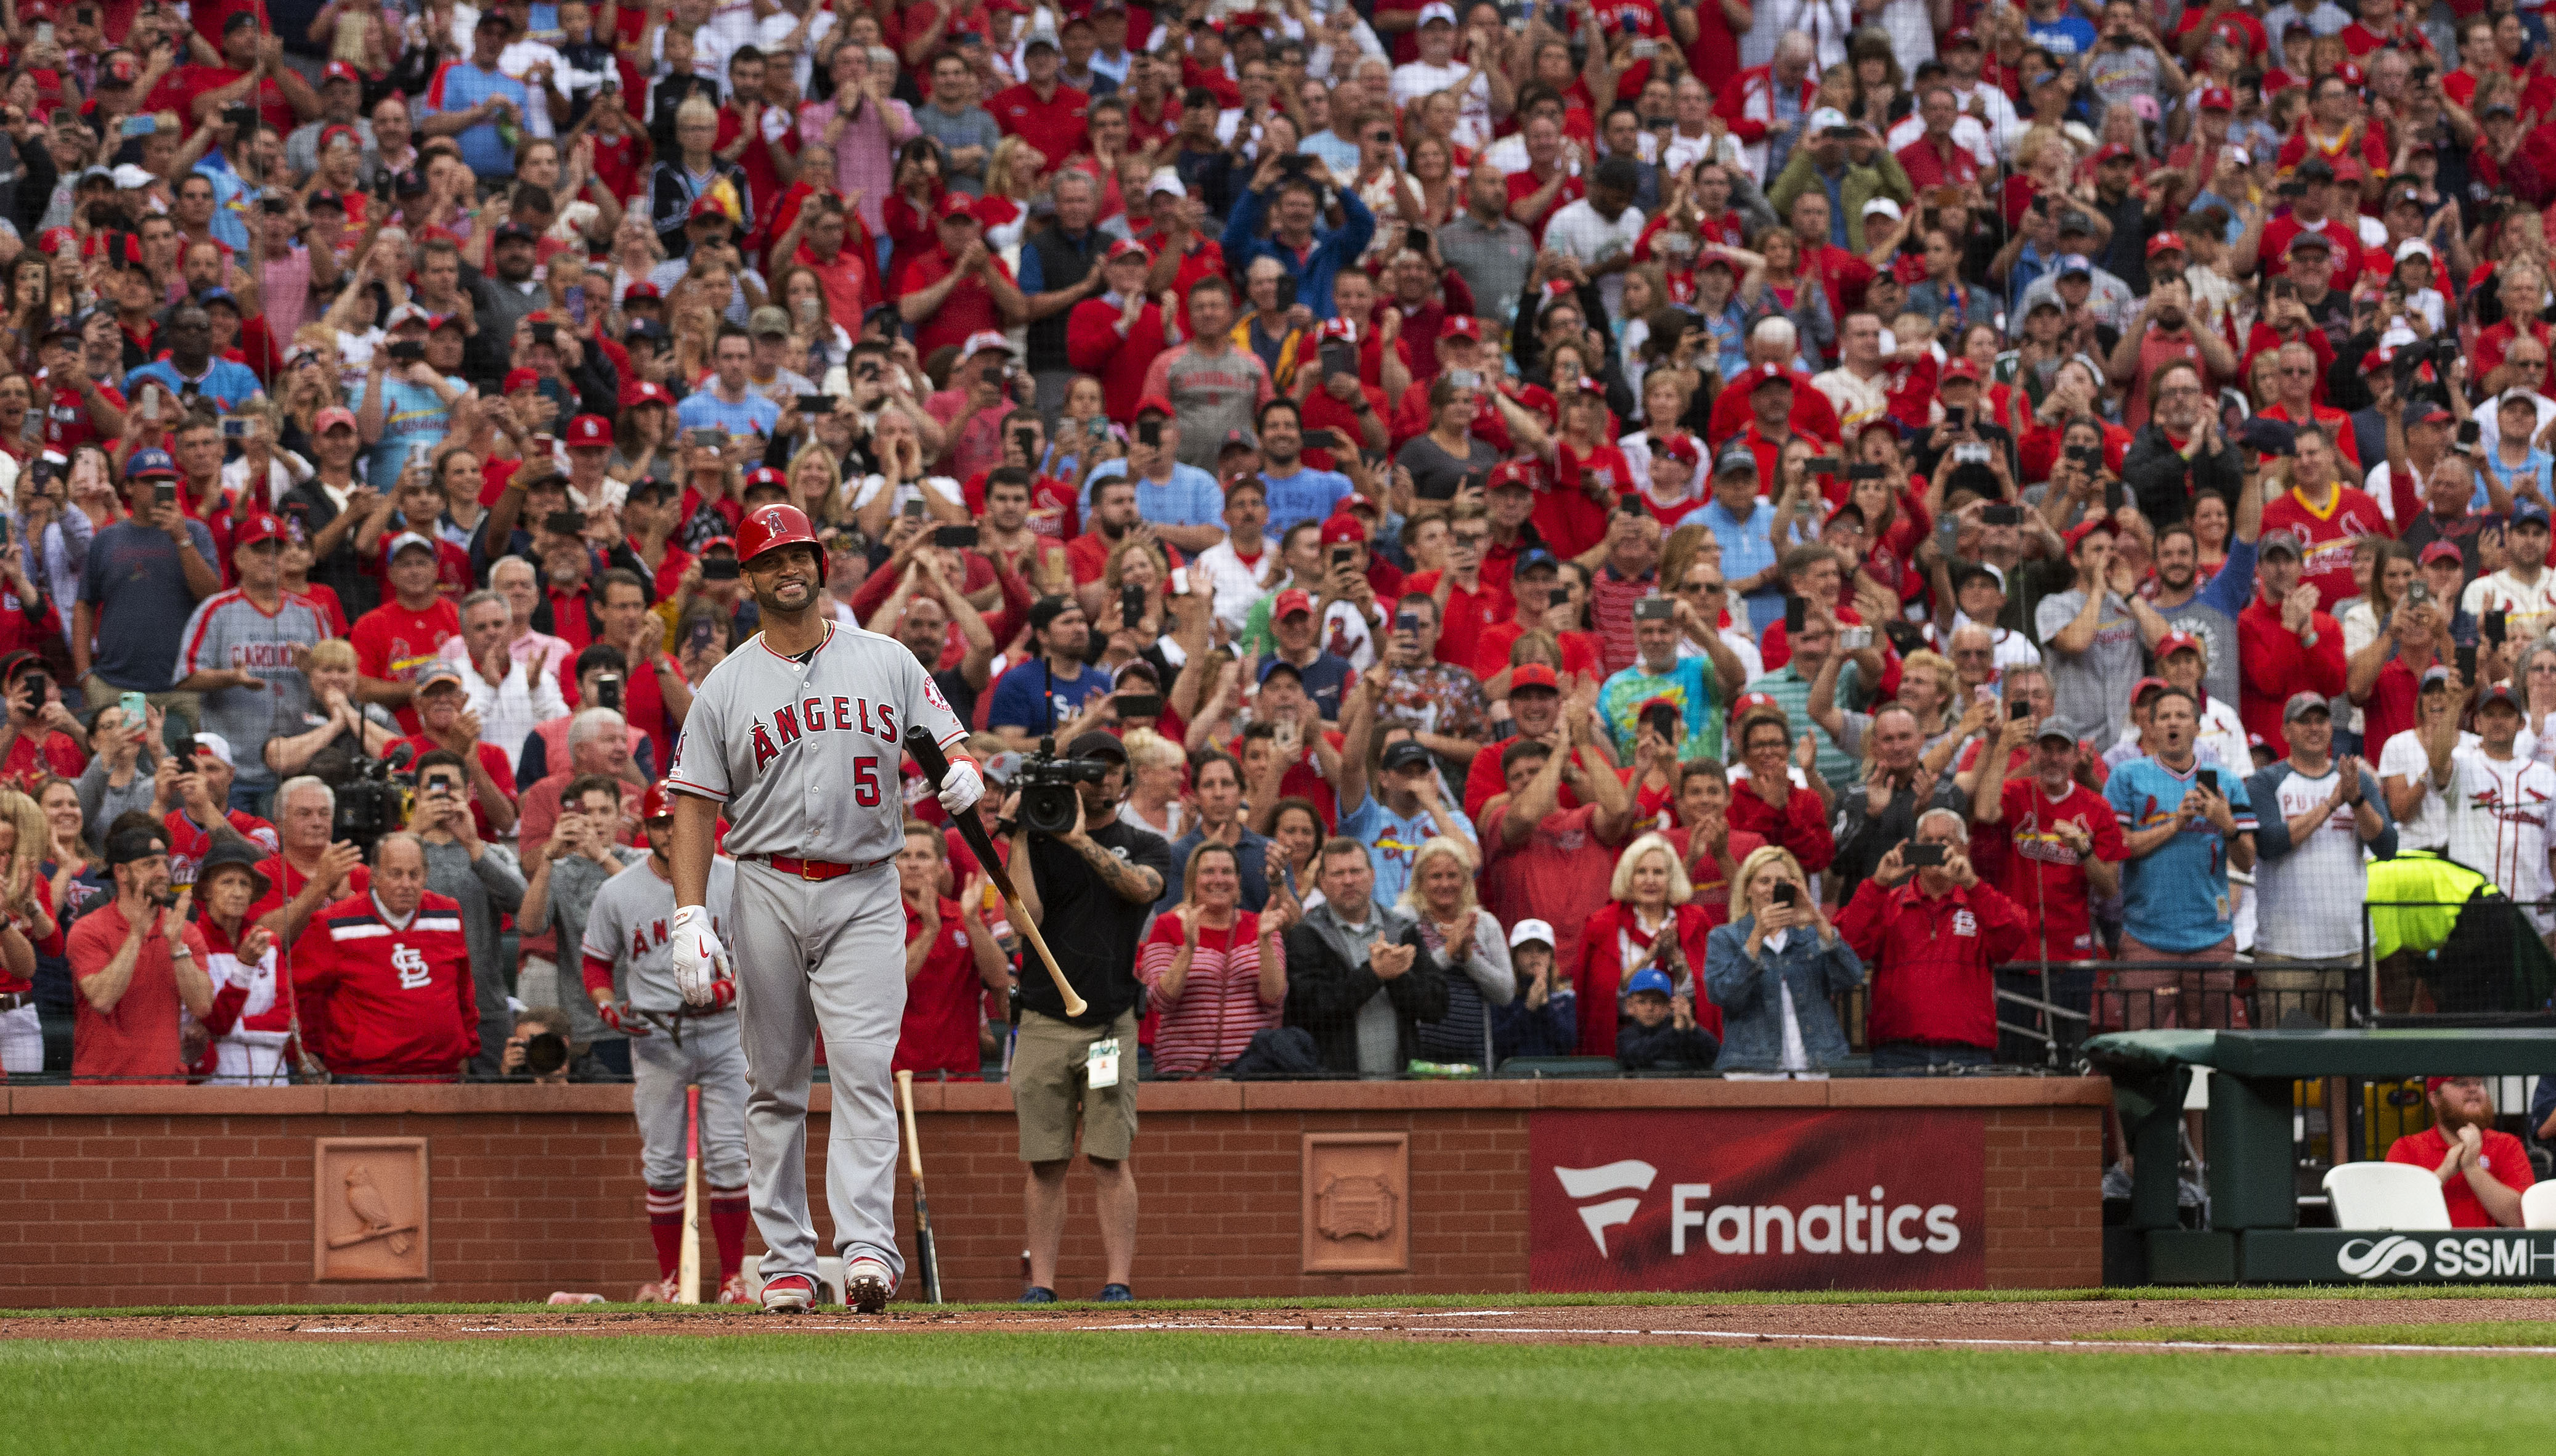 Pujols cheered in return, but Angels fall to Cardinals 5-1